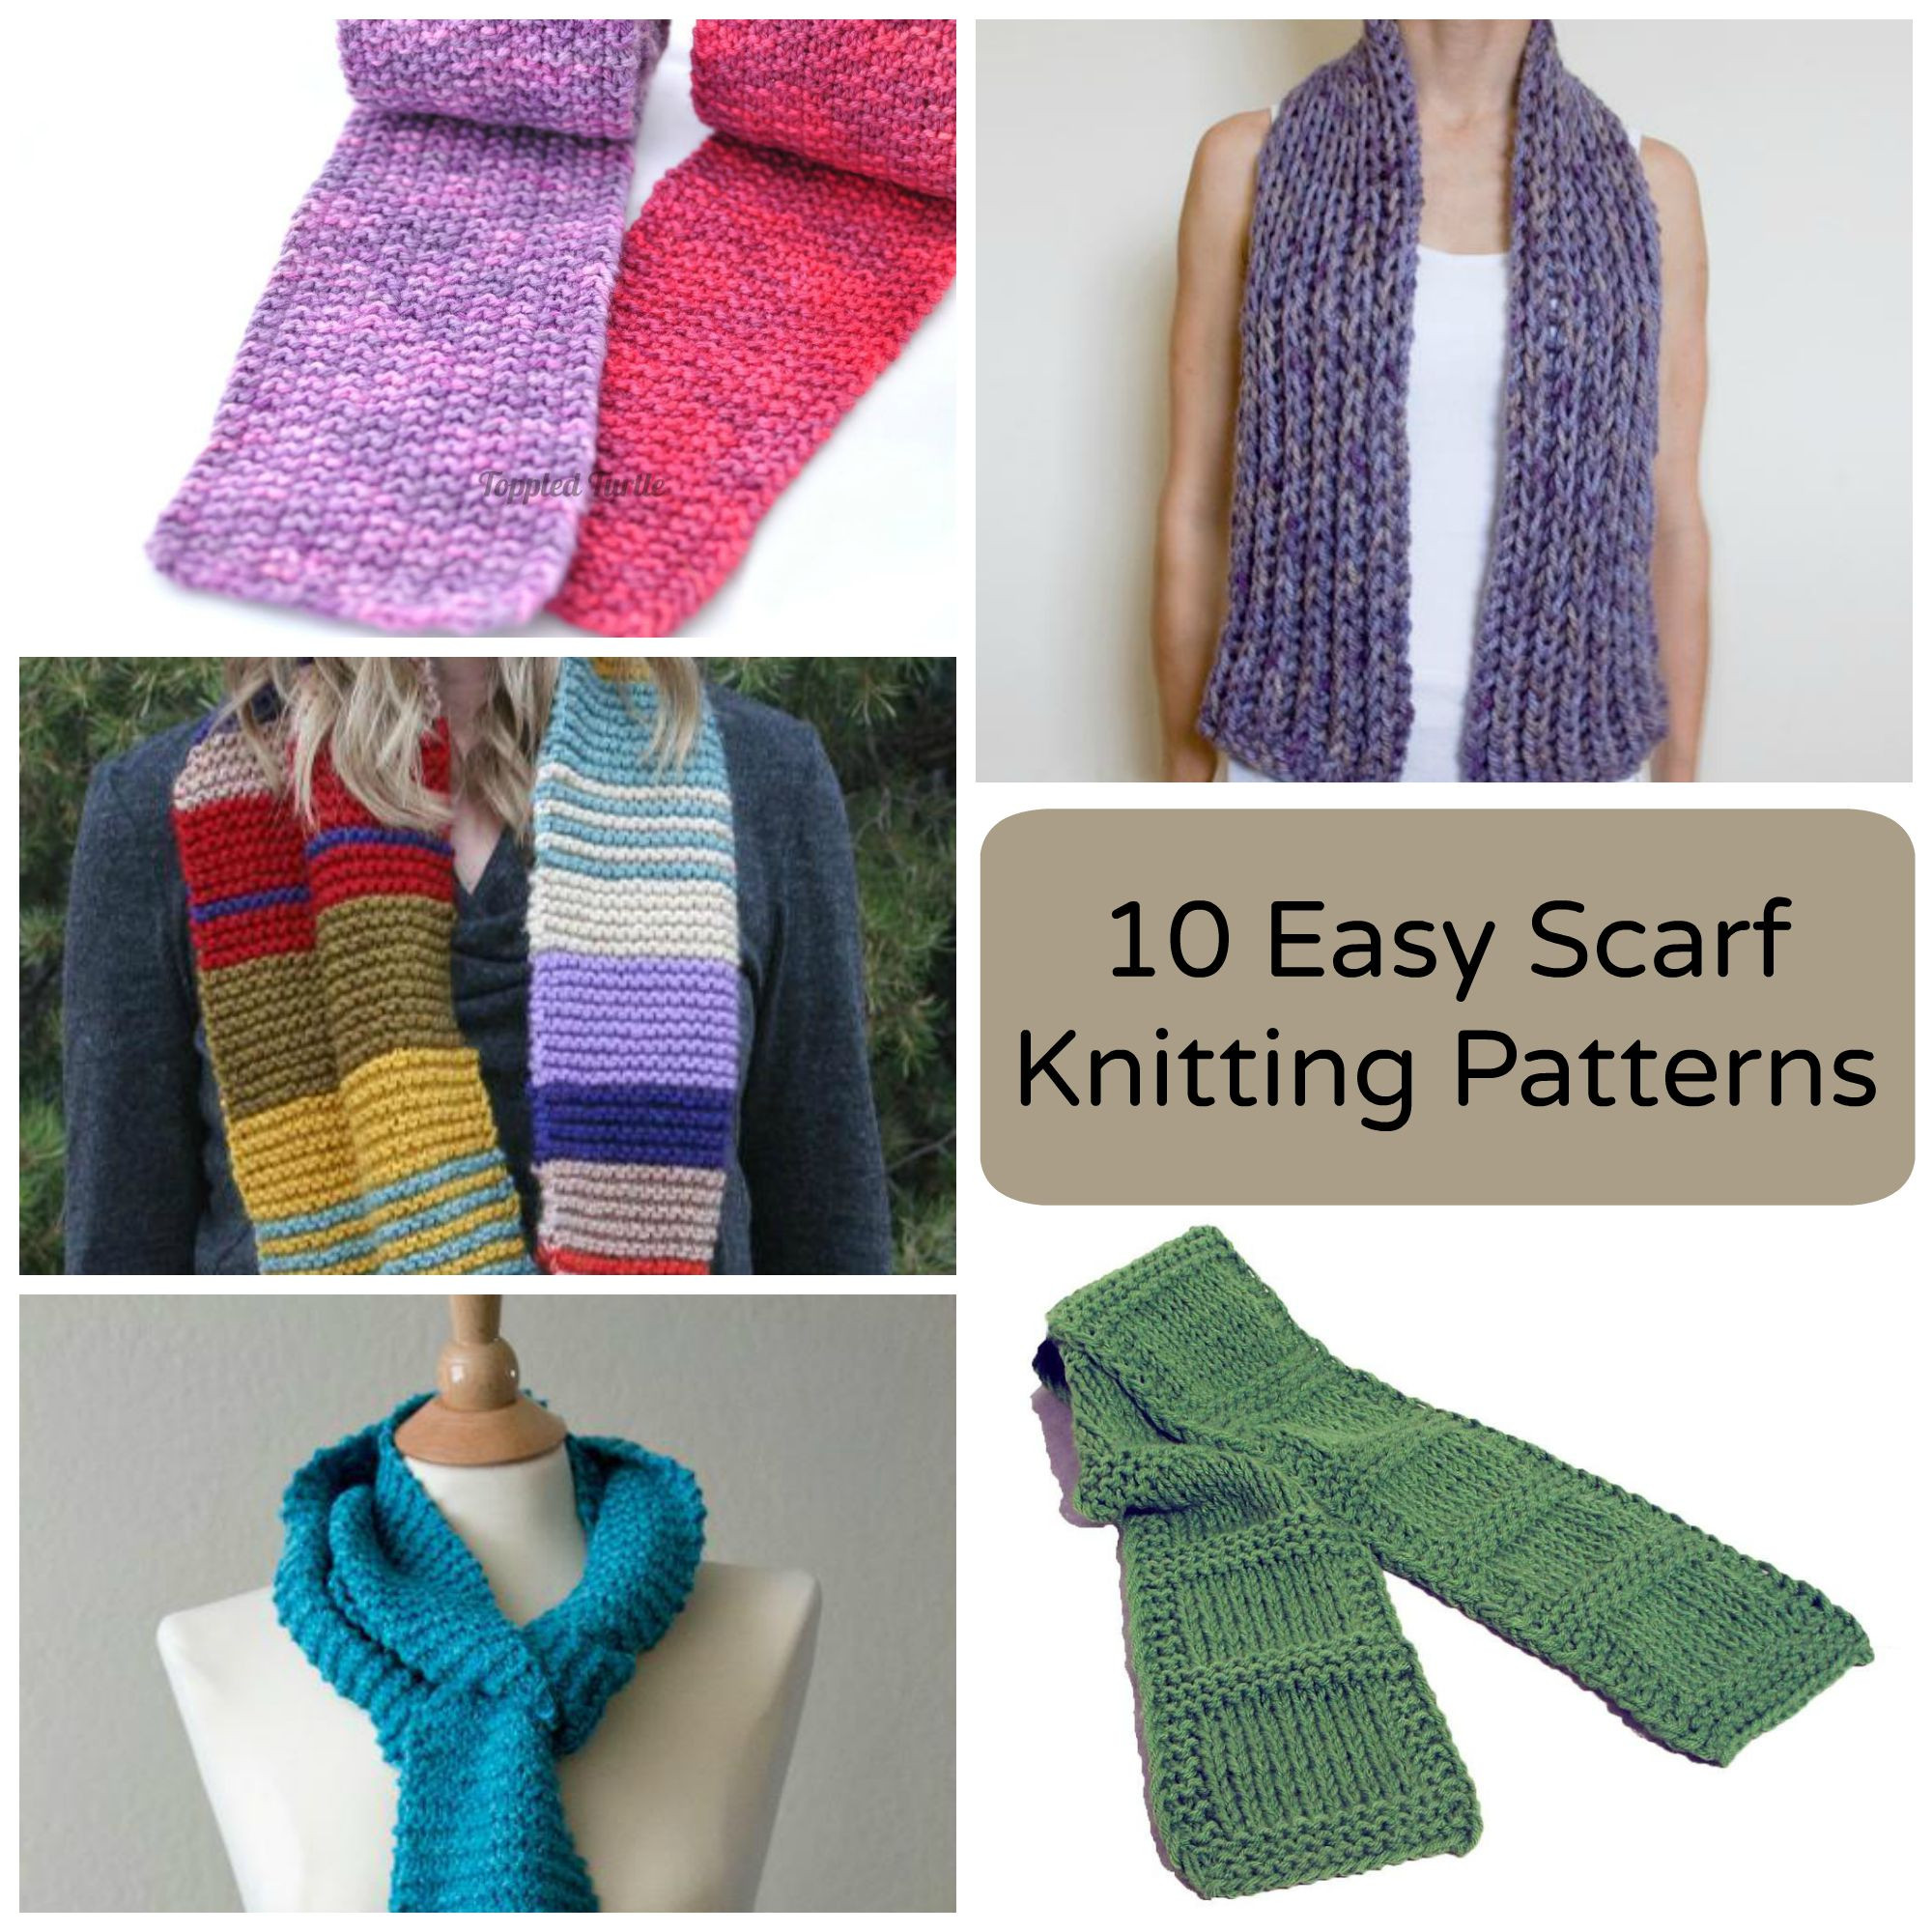 Scarf Patterns Unique 10 Easy Scarf Knitting Patterns for Beginners Of Great 42 Images Scarf Patterns